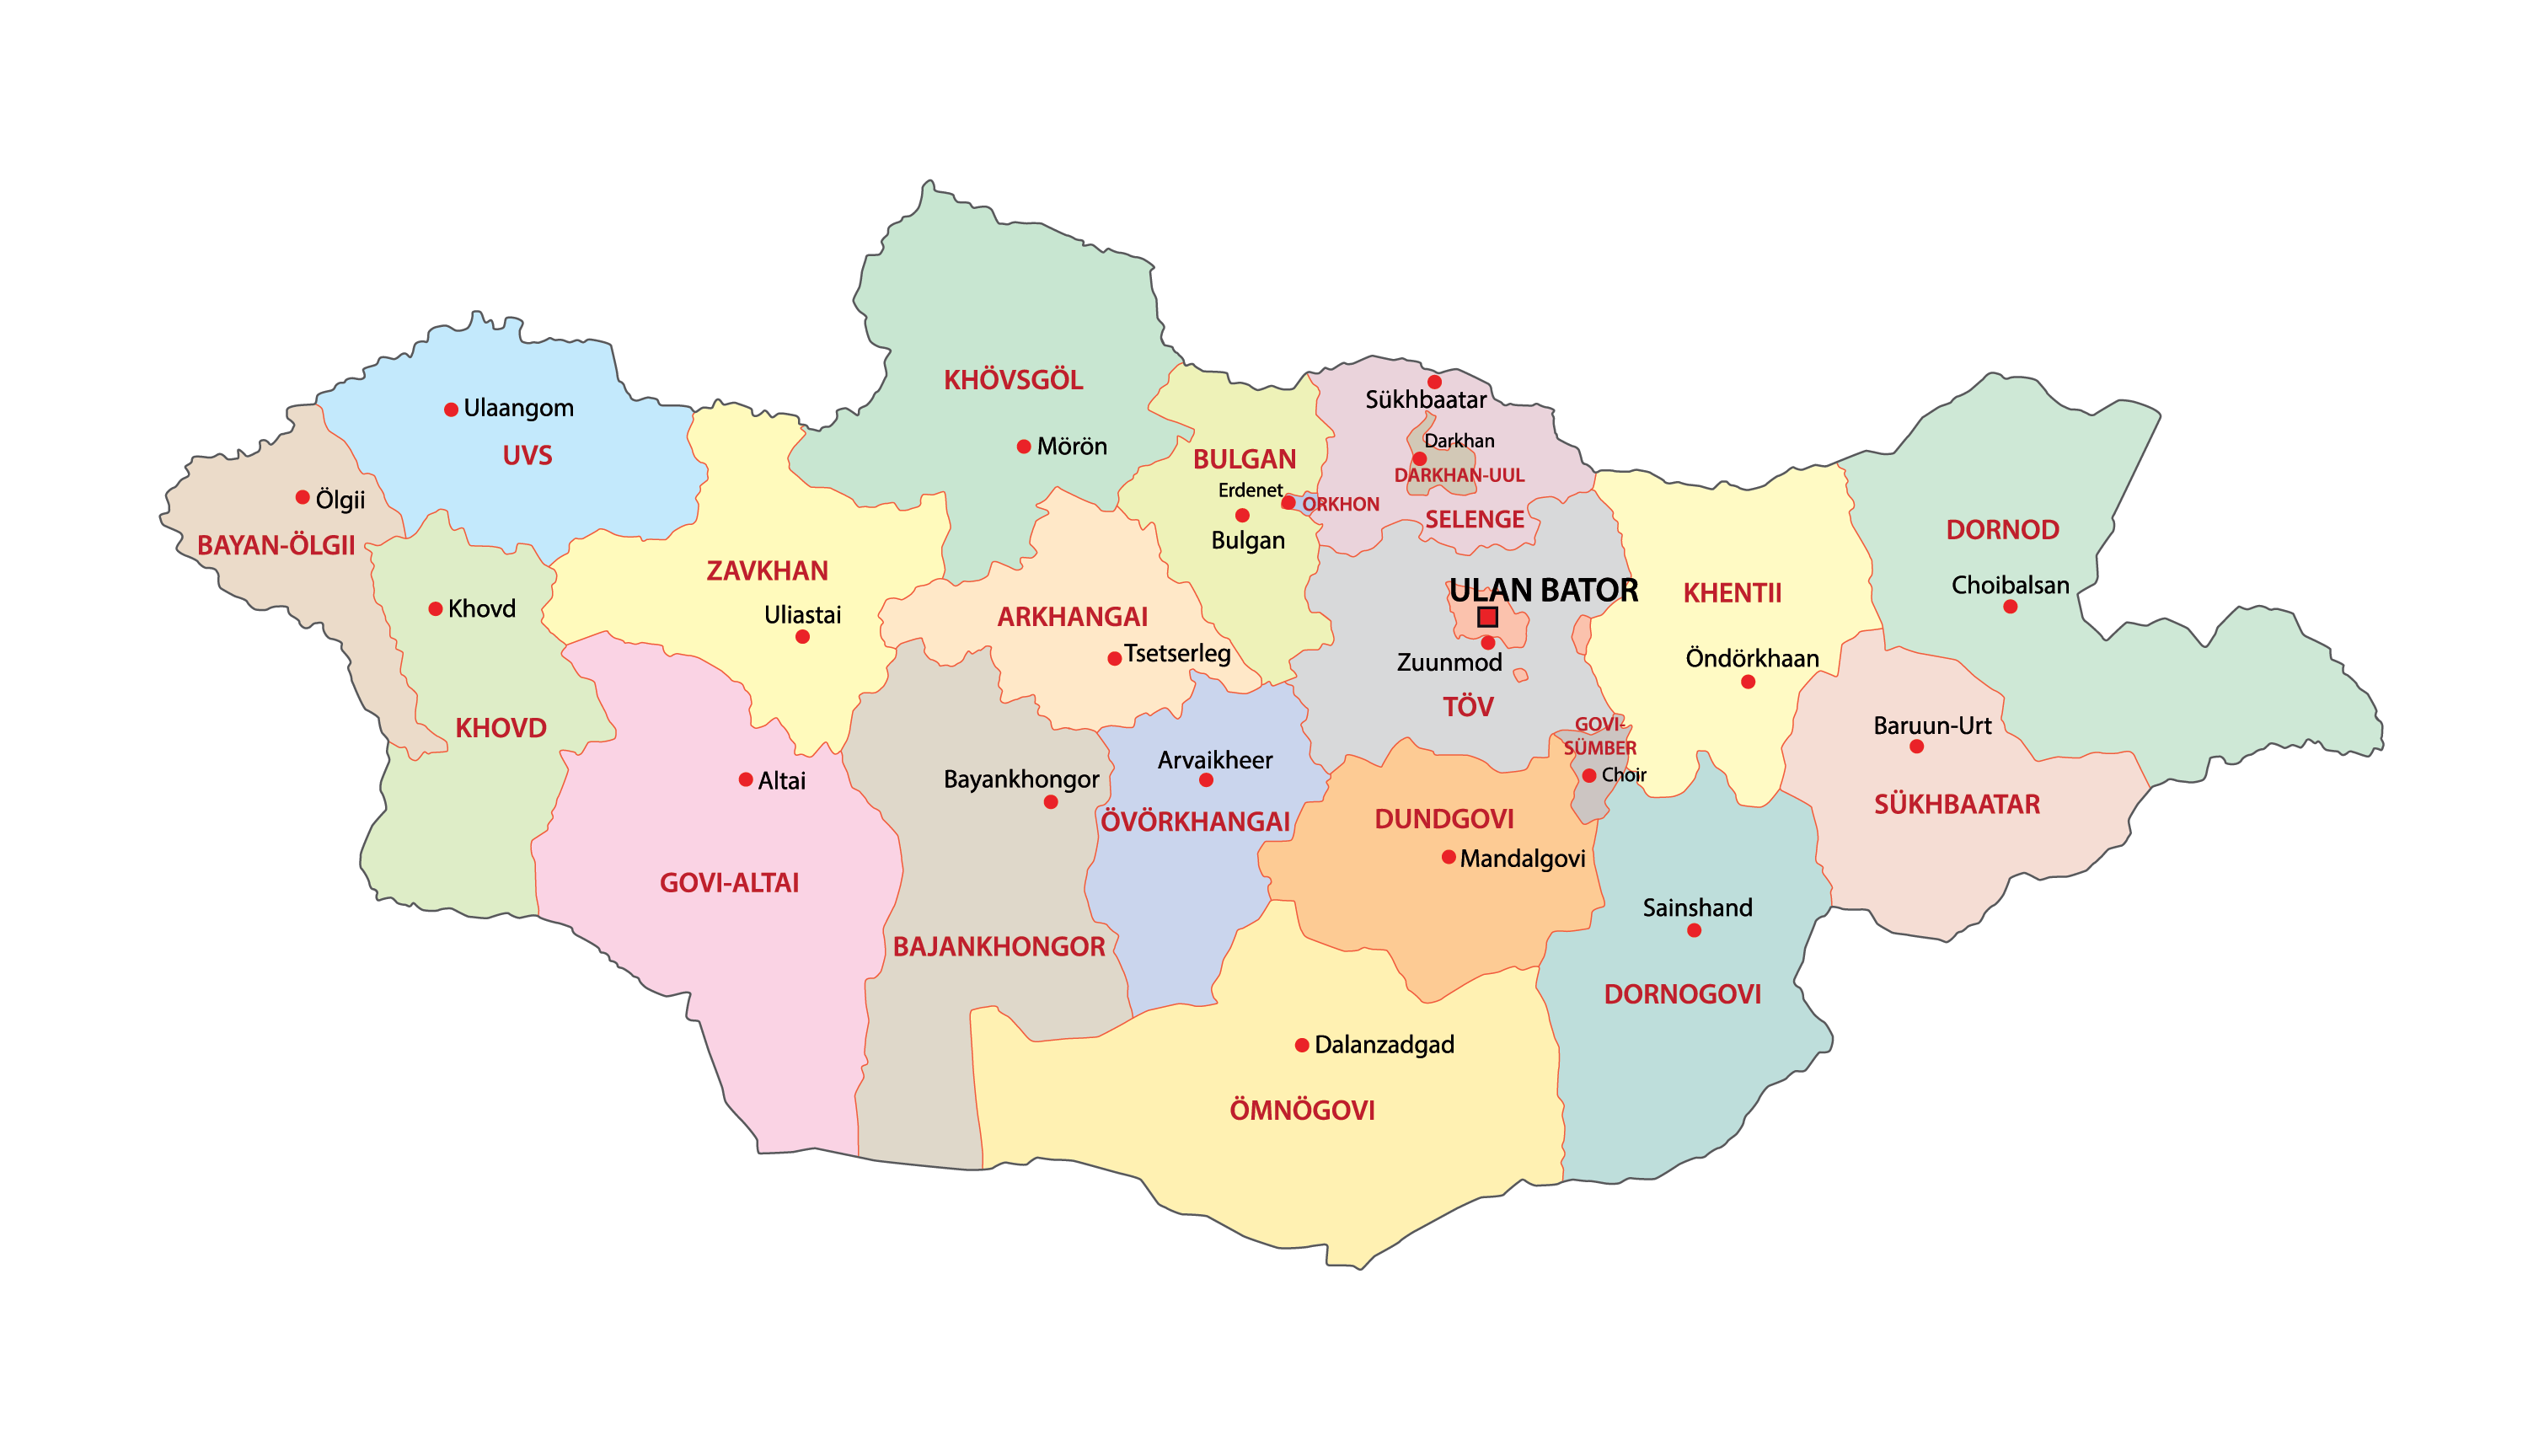 Political Map of Mongolia displaying the 21 administrative provinces and 1 provincial municipality including the national capital of Ulaanbaatar .